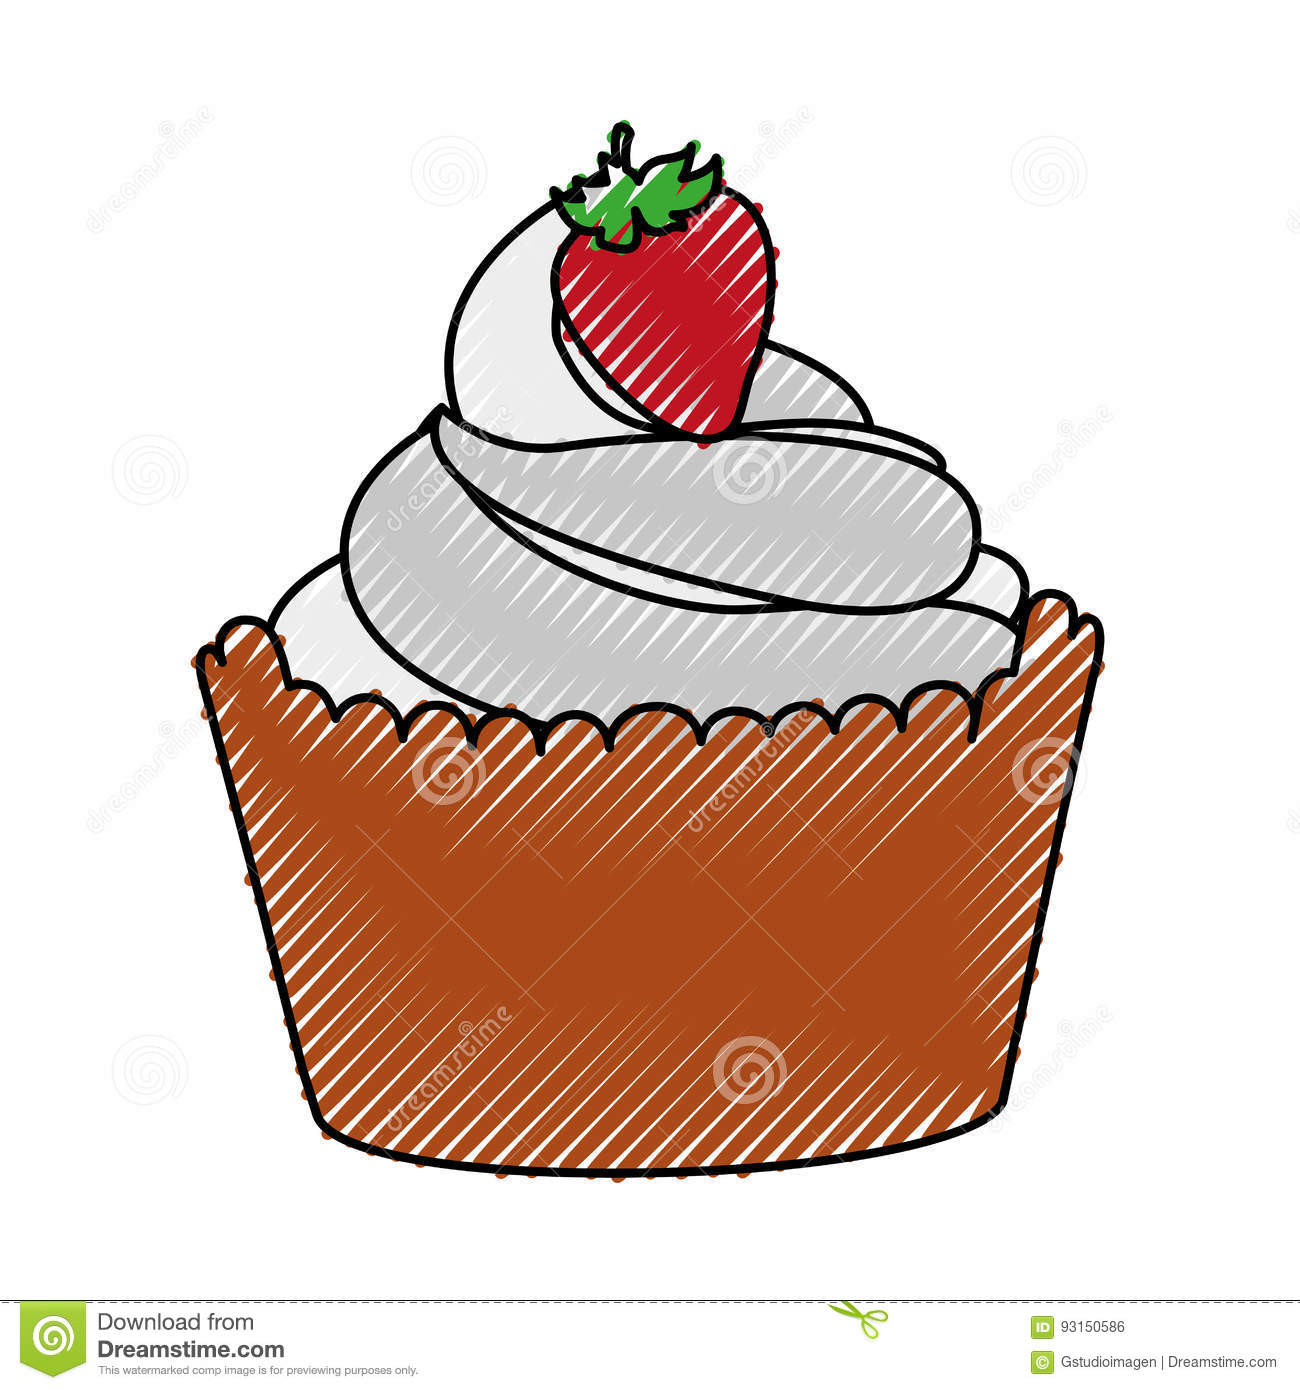 Delicious cupcake with strawberry isolated icon